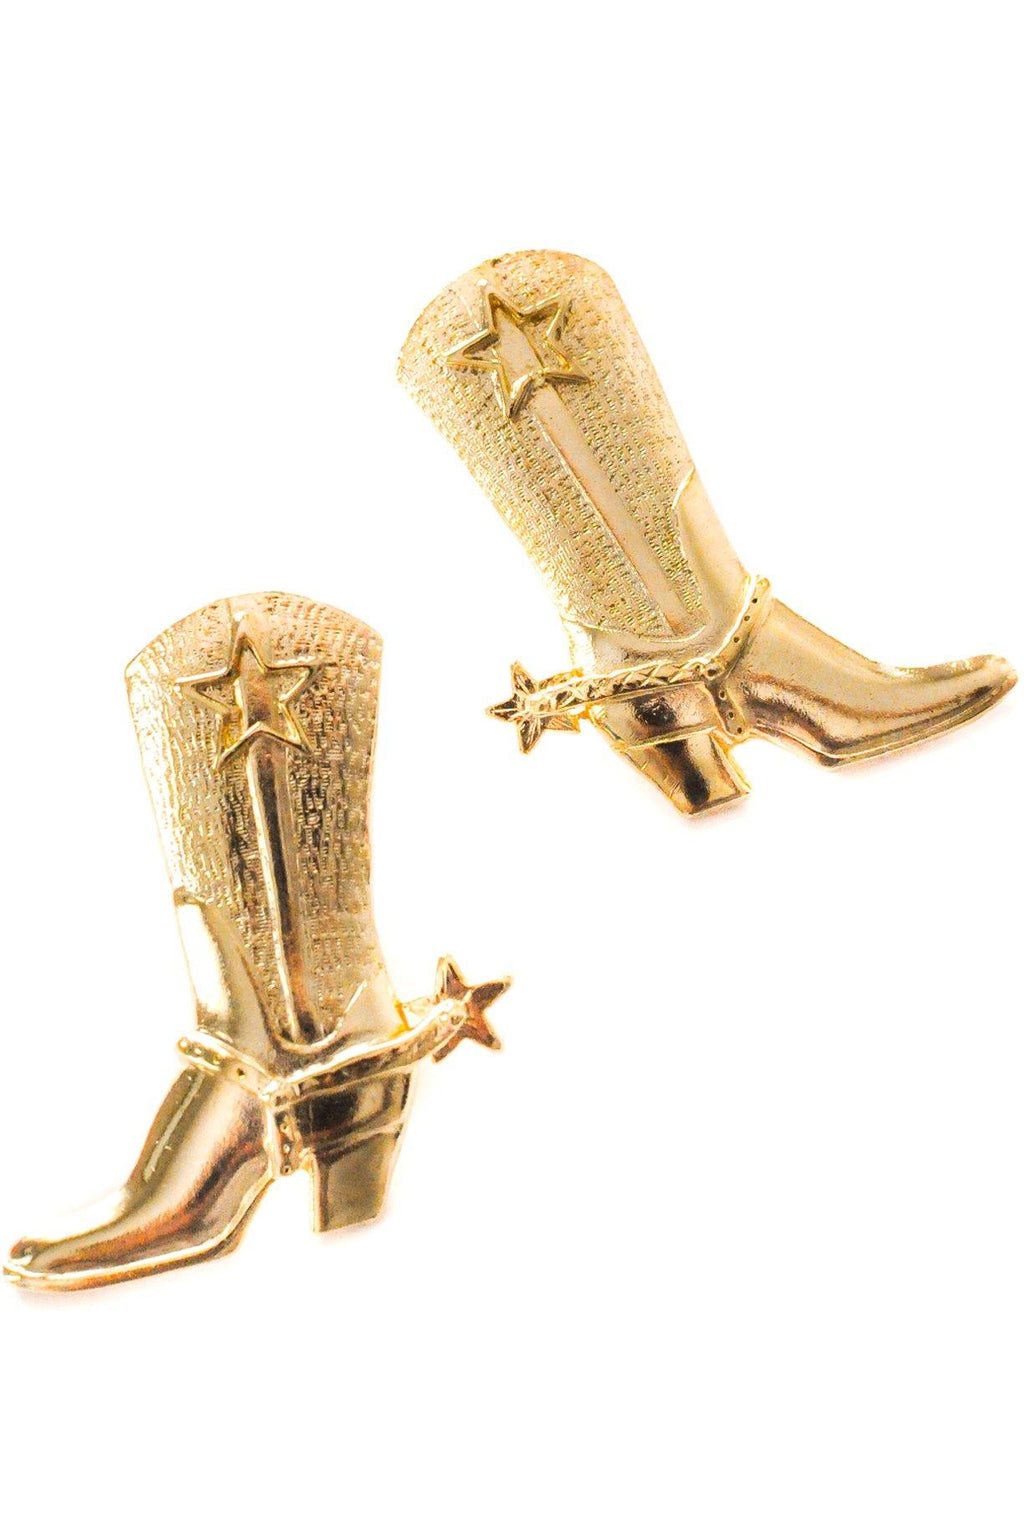 Cowboy Boots Clip-on Earrings